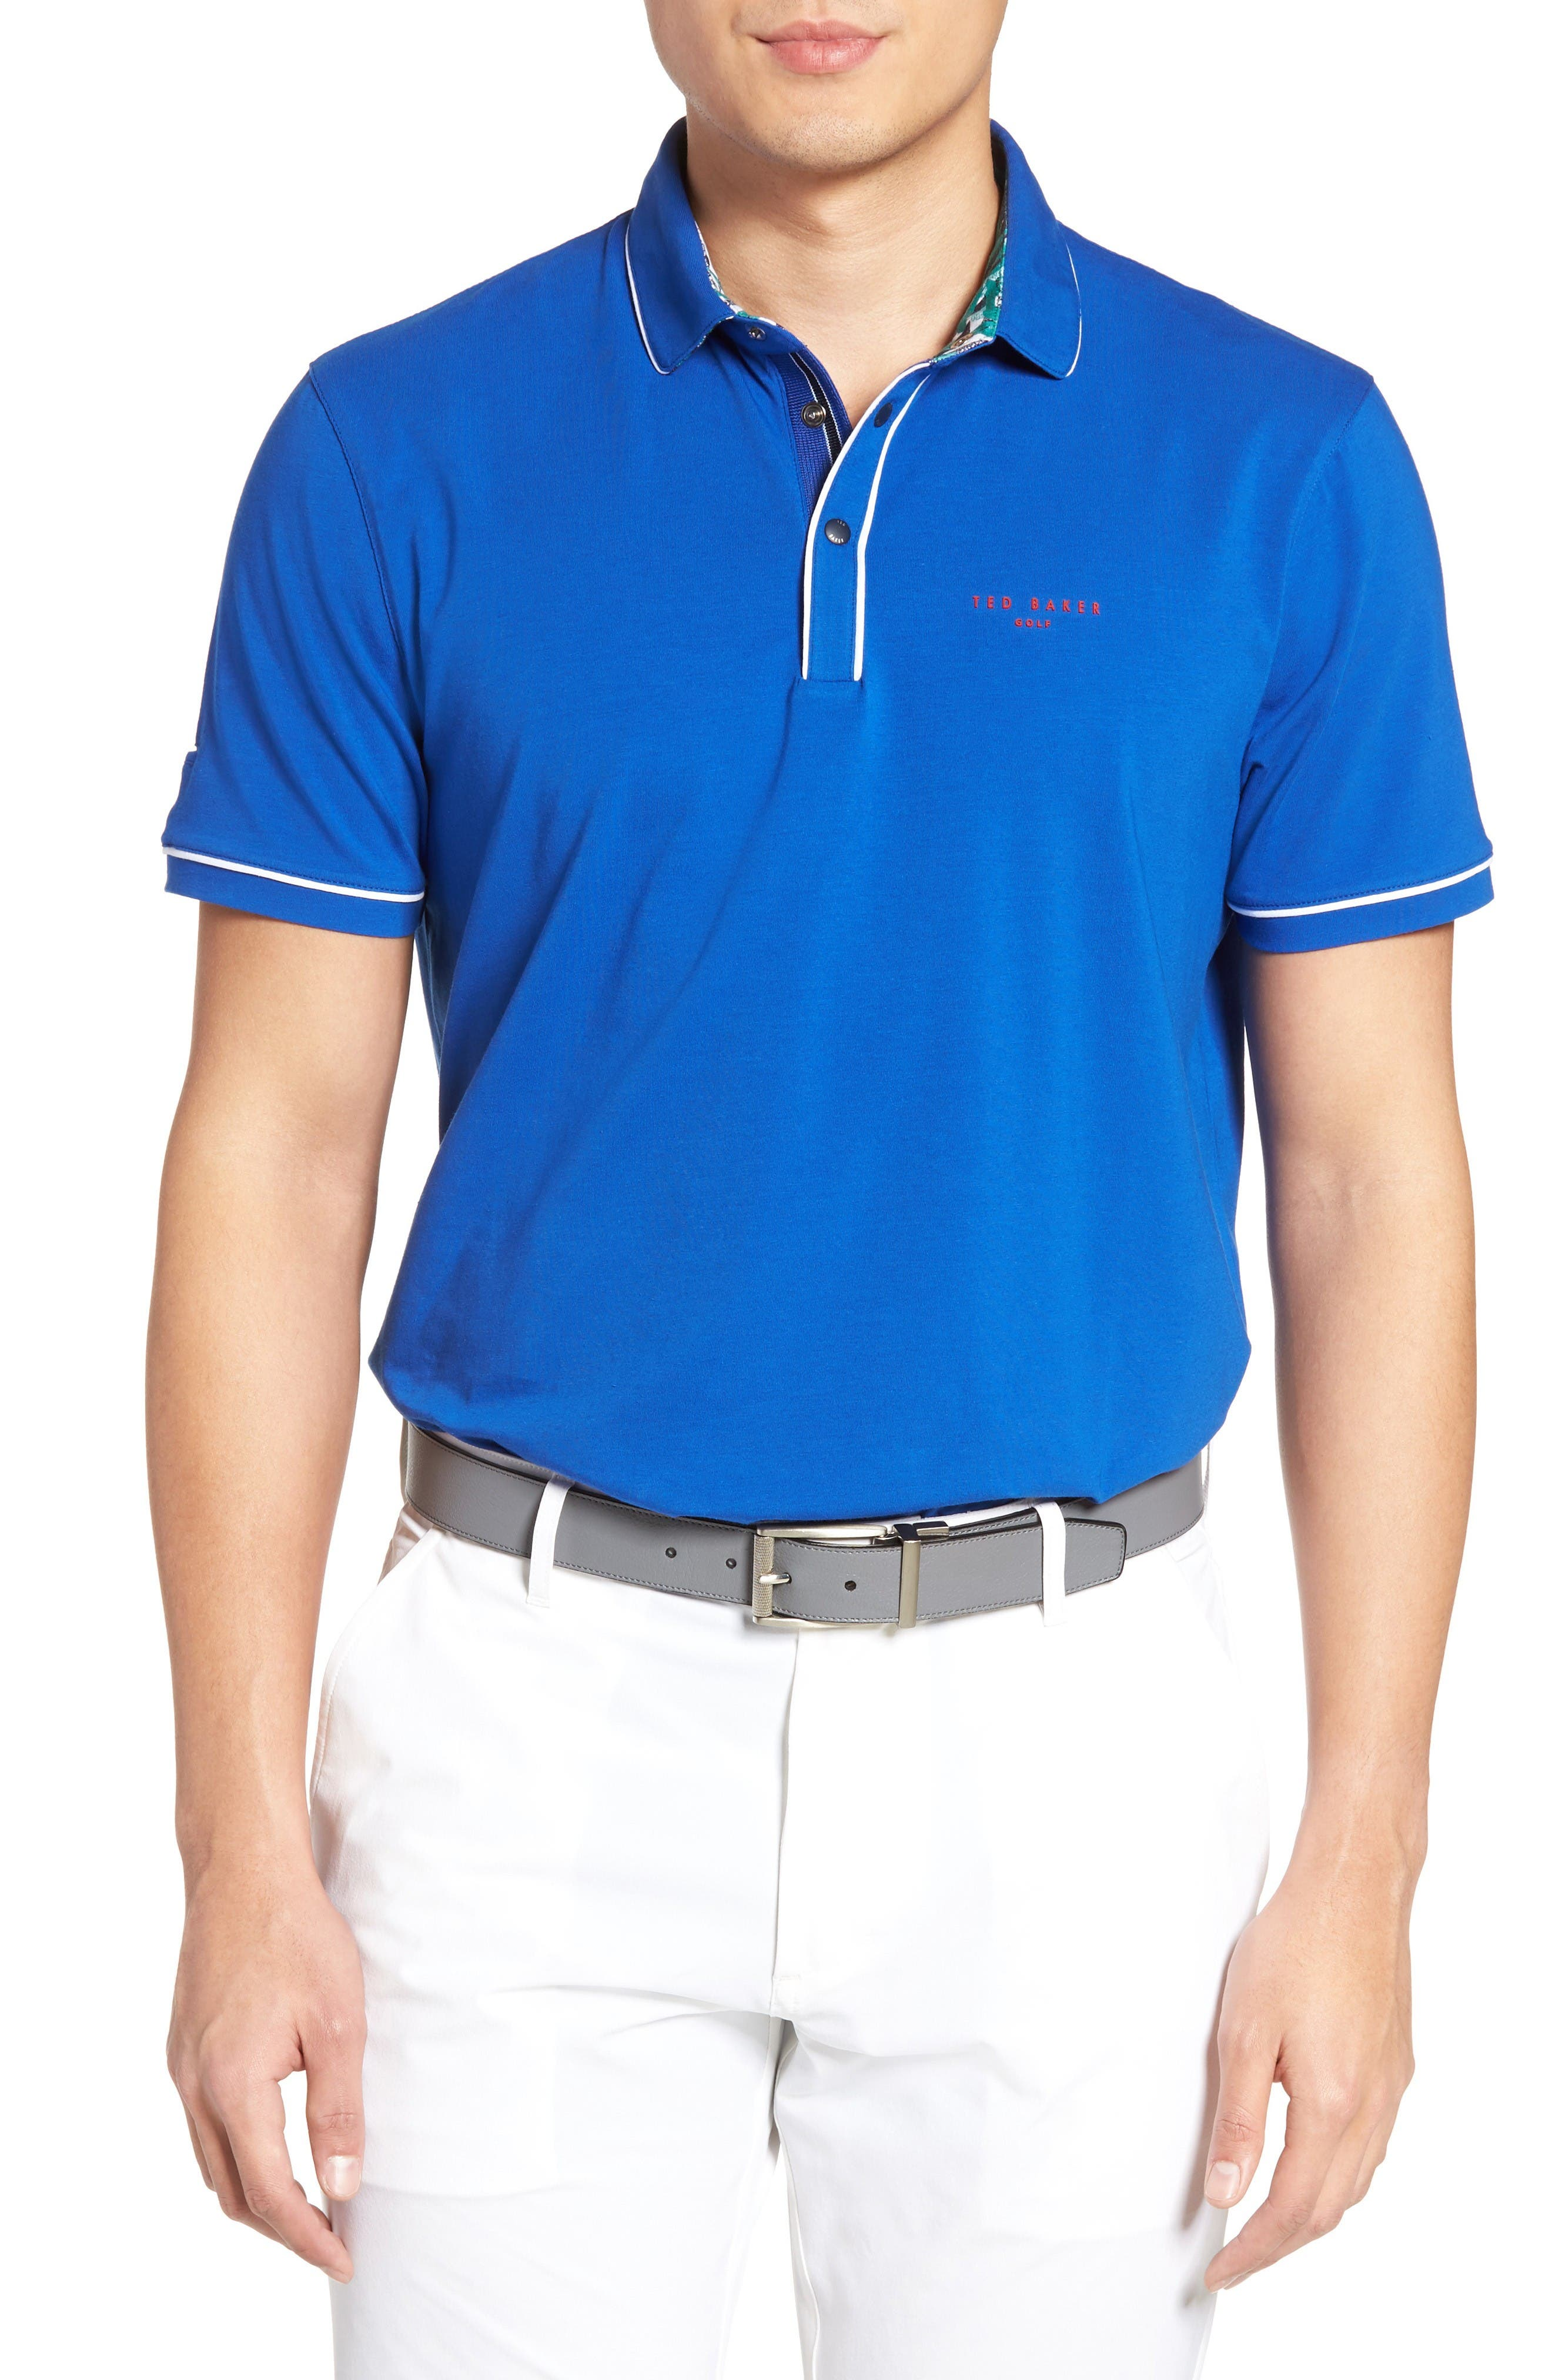 Main Image - Ted Baker London Playgo Piped Trim Golf Polo